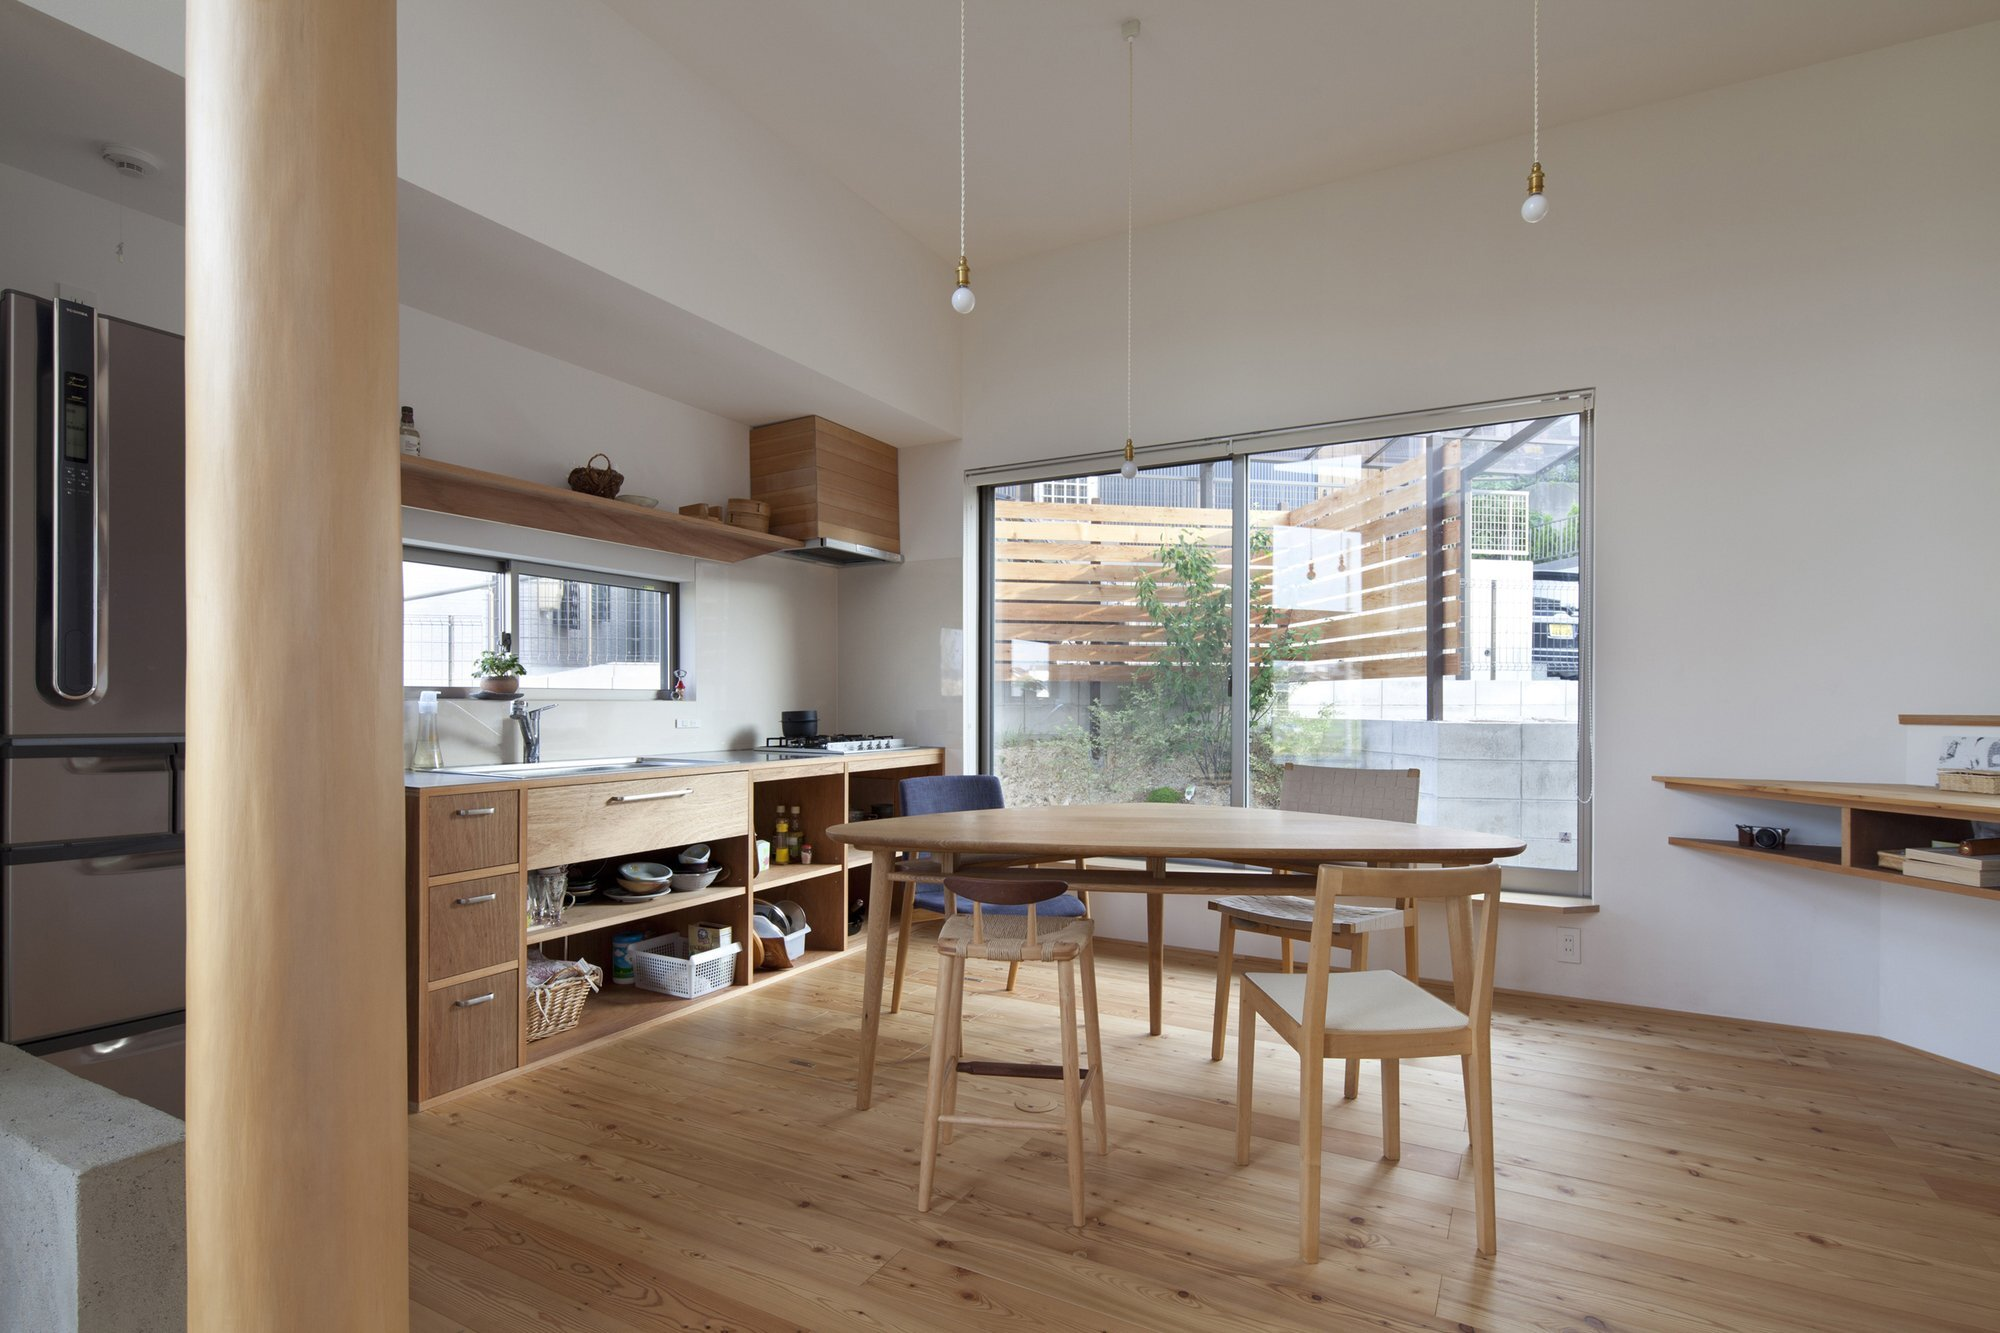 Image gallery japanese studio houses for Japanese kitchen designs